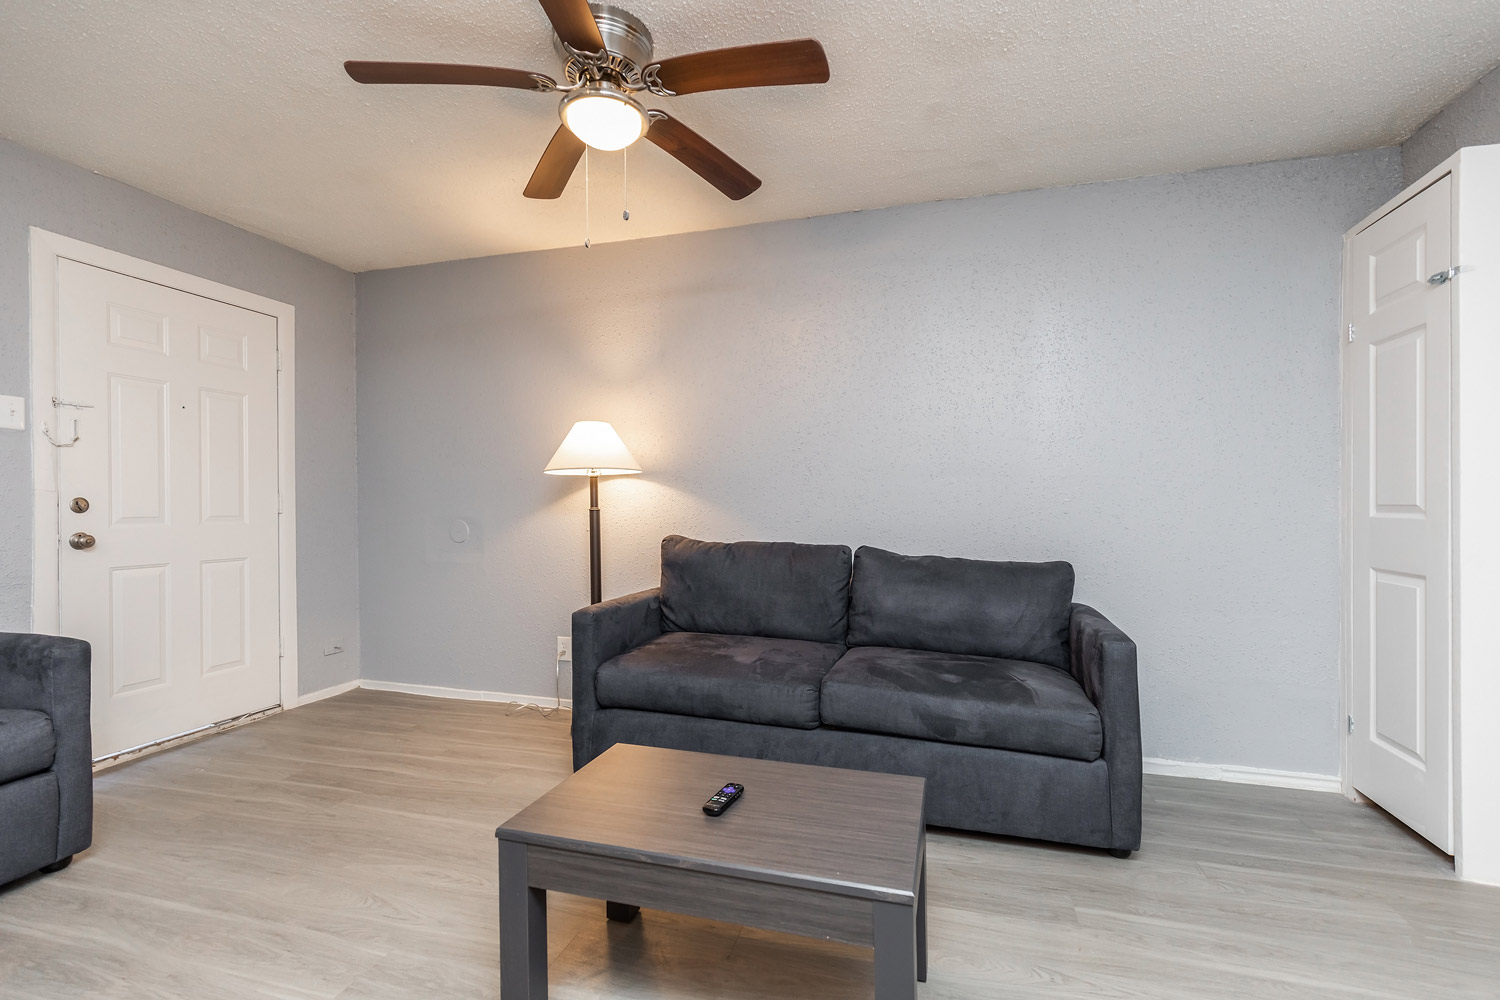 Room with Ceiling Fan at The Five Points at Texas Apartments in Texas City, Texas